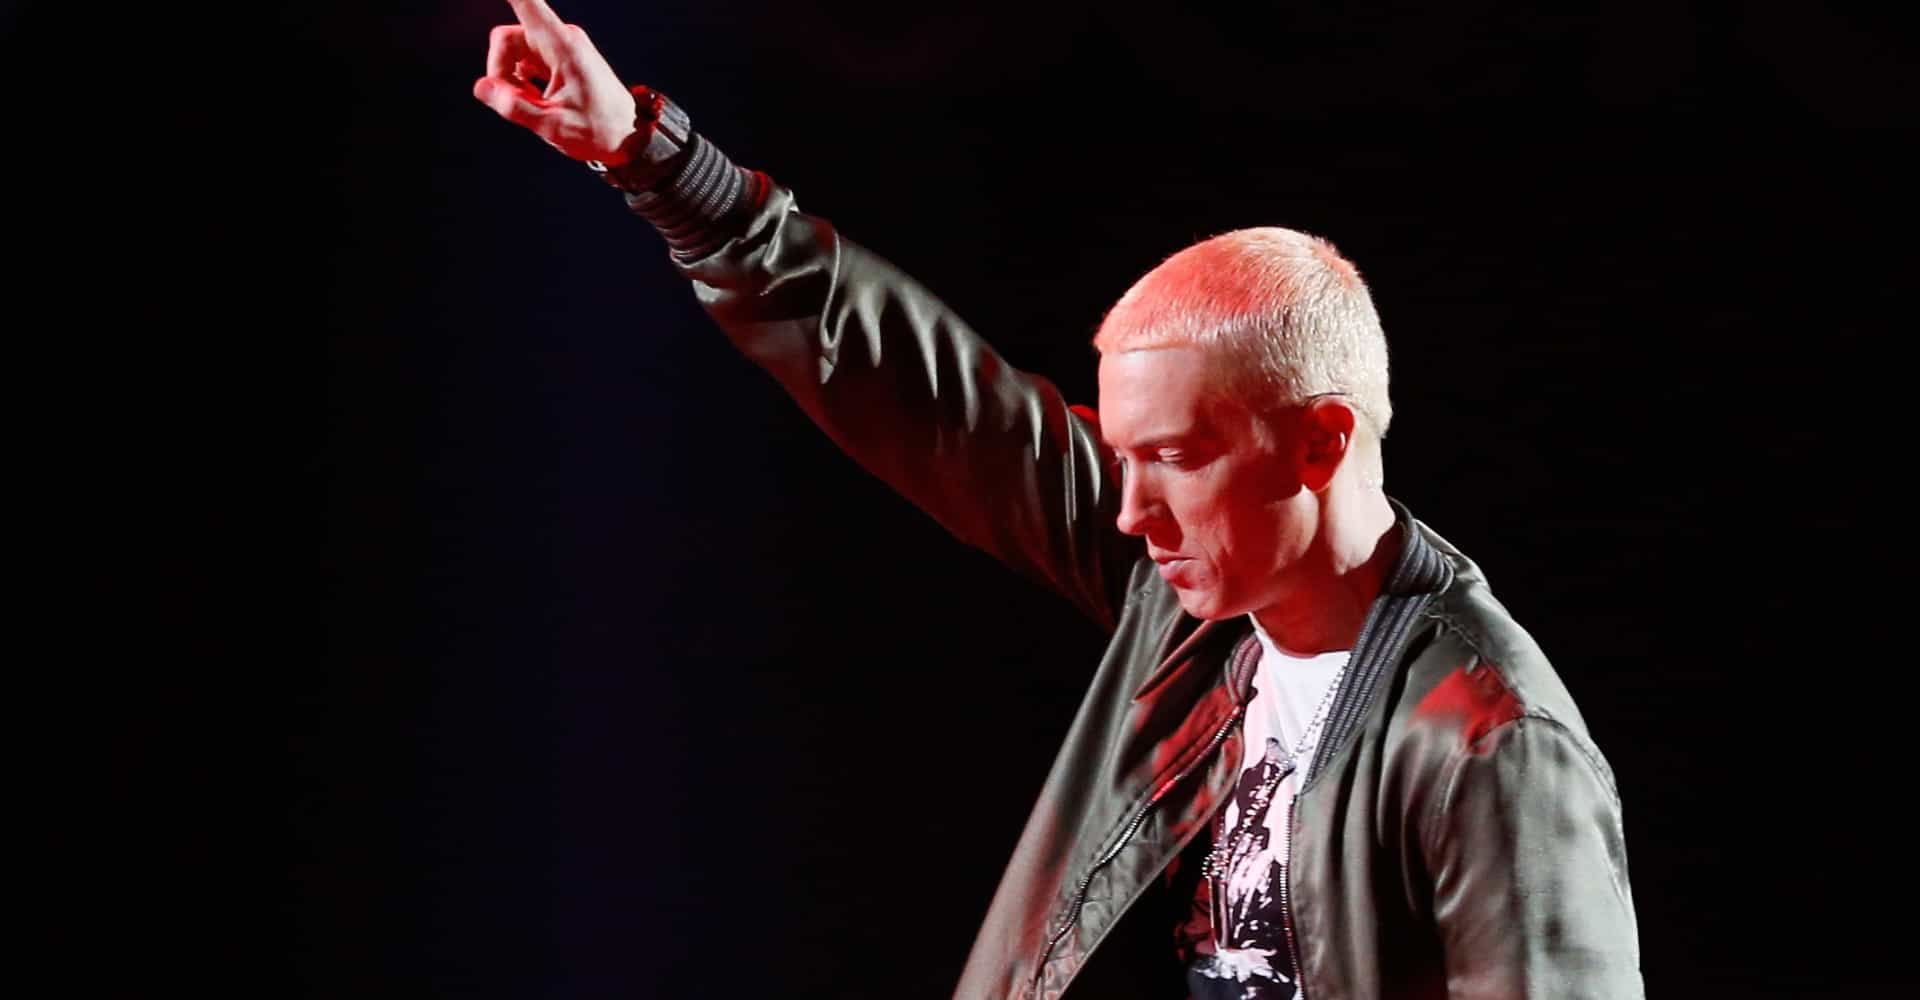 30 things you didn't know about Eminem